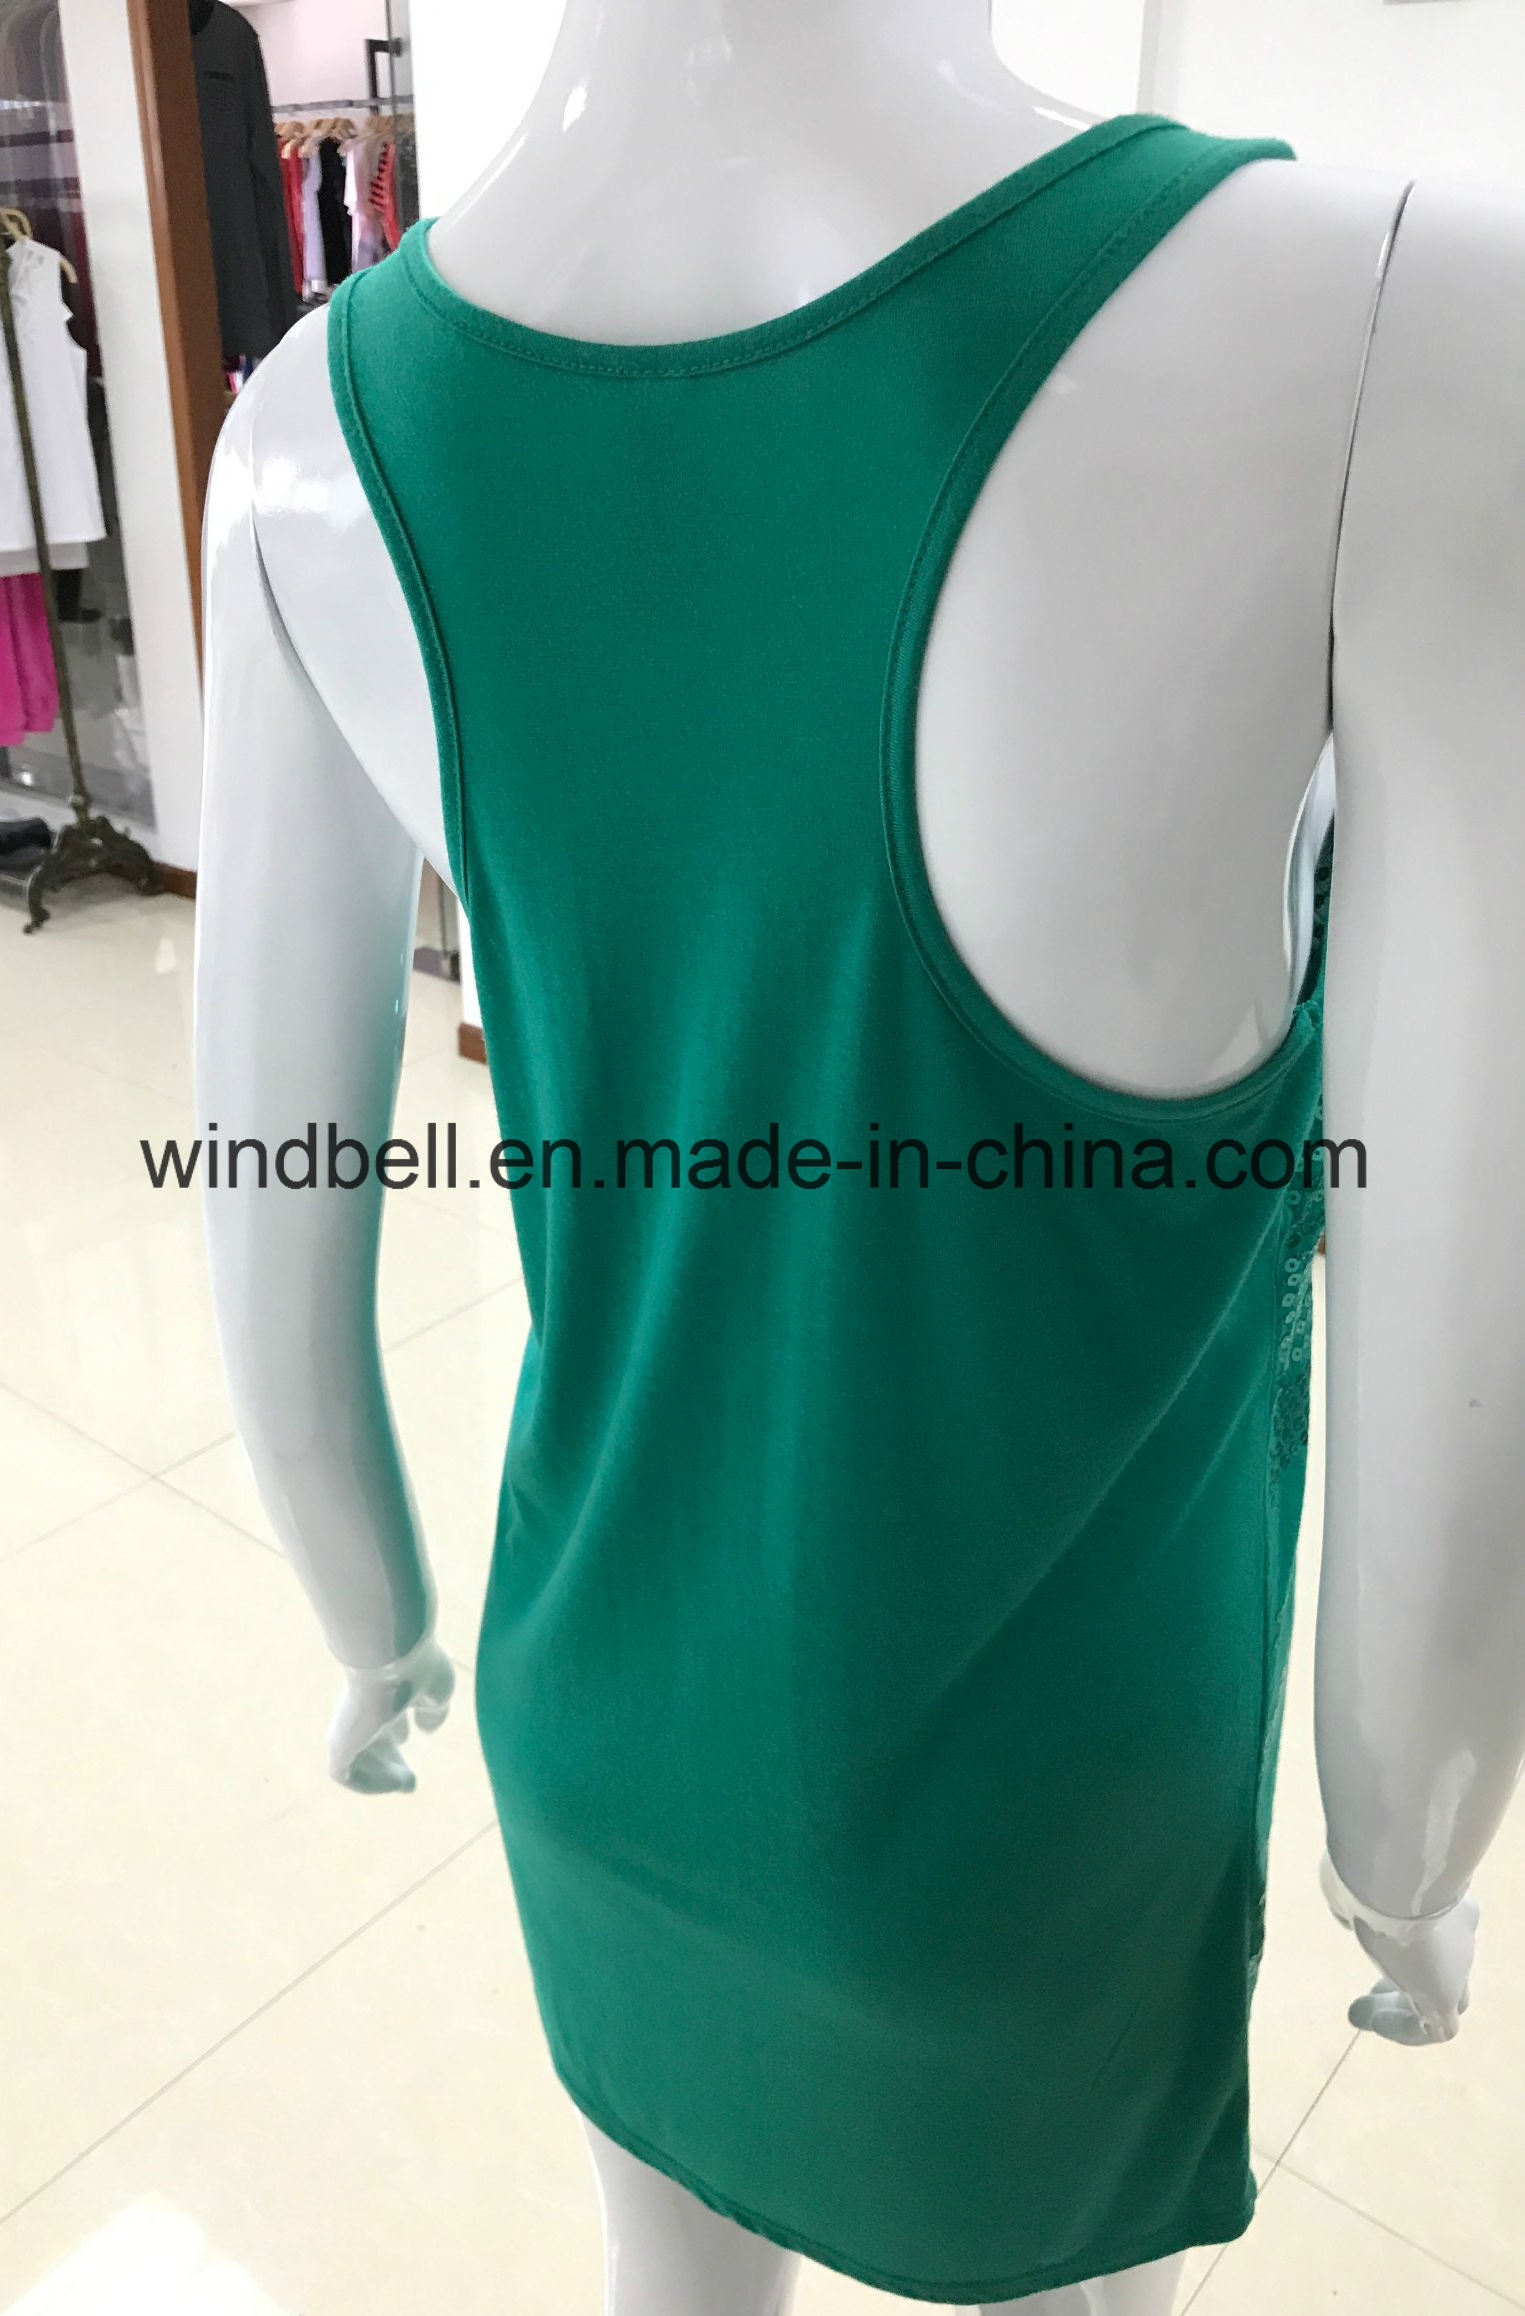 Fashionable Dress for Women with Sequins